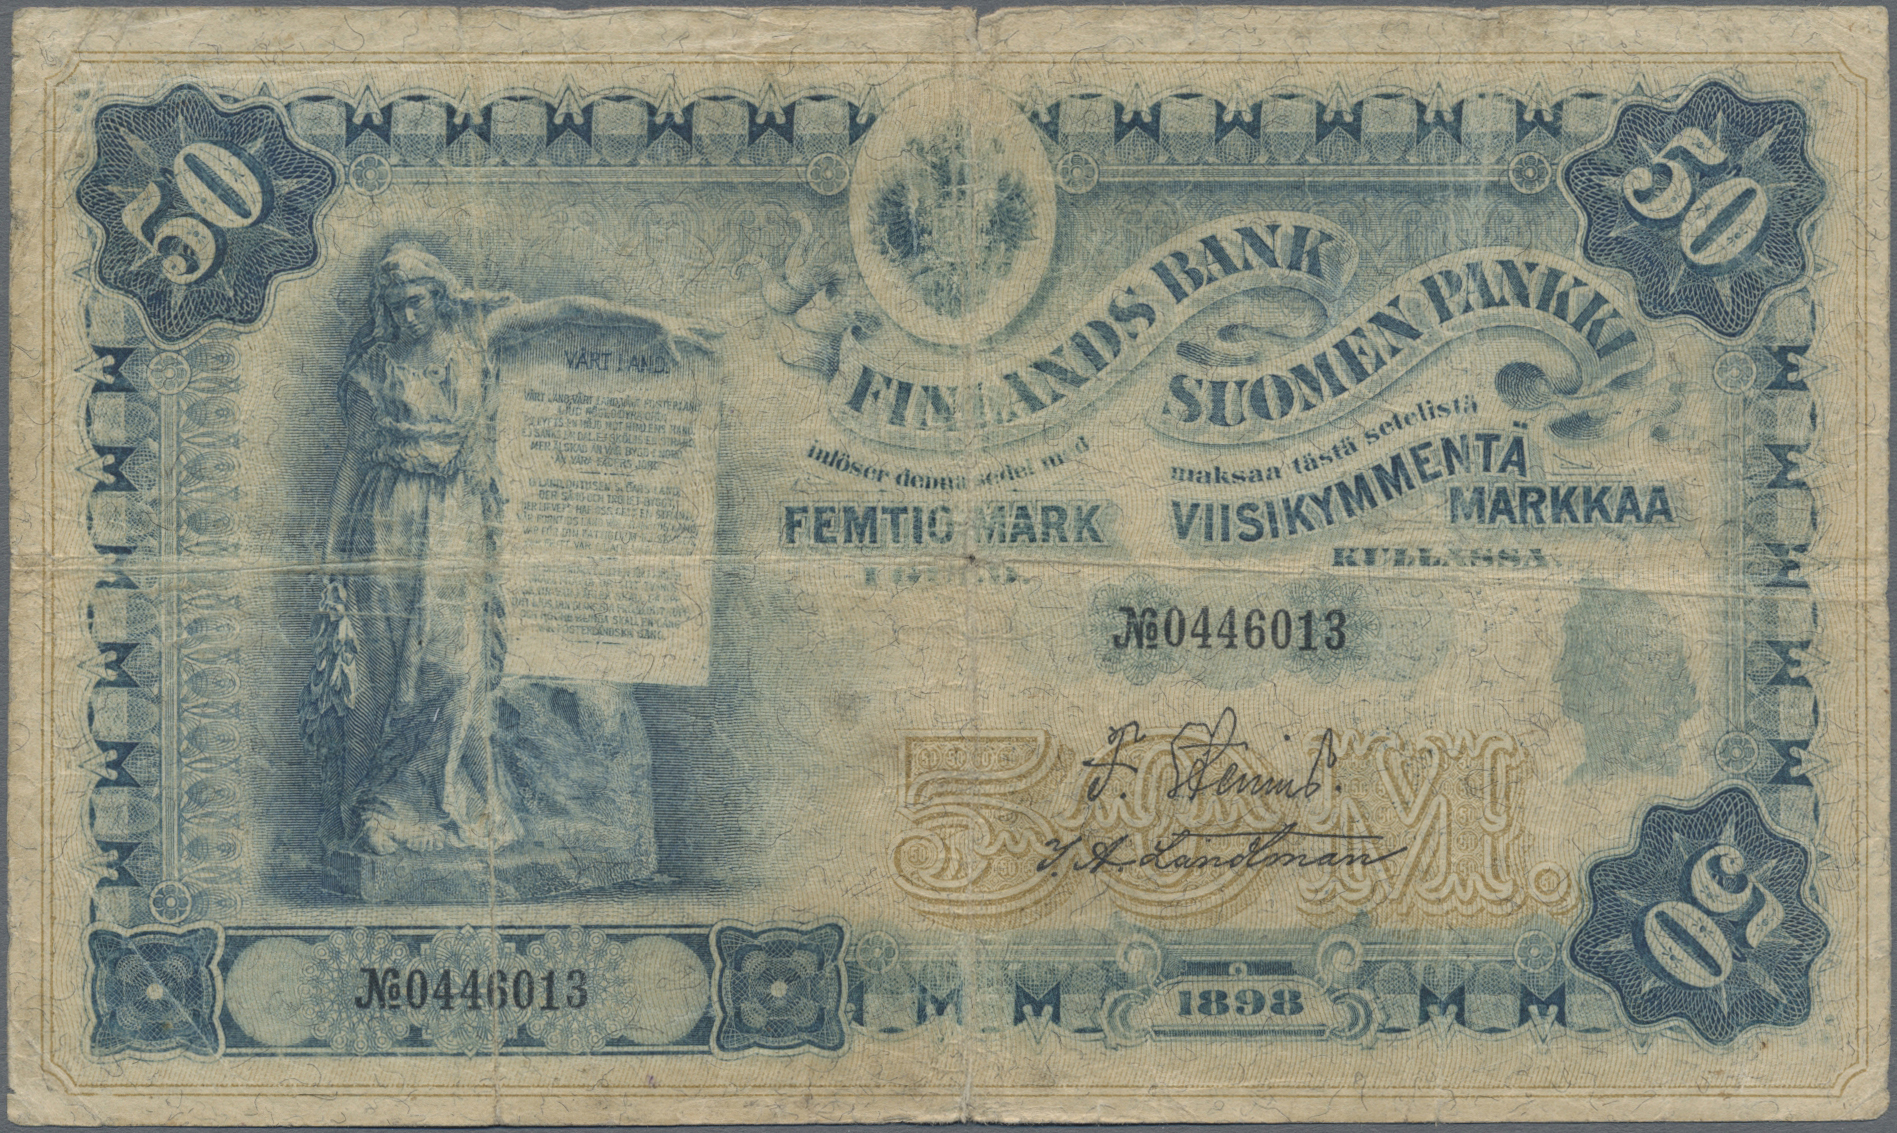 Lot 00250 - Finland / Finnland | Banknoten  -  Auktionshaus Christoph Gärtner GmbH & Co. KG Sale #48 The Banknotes